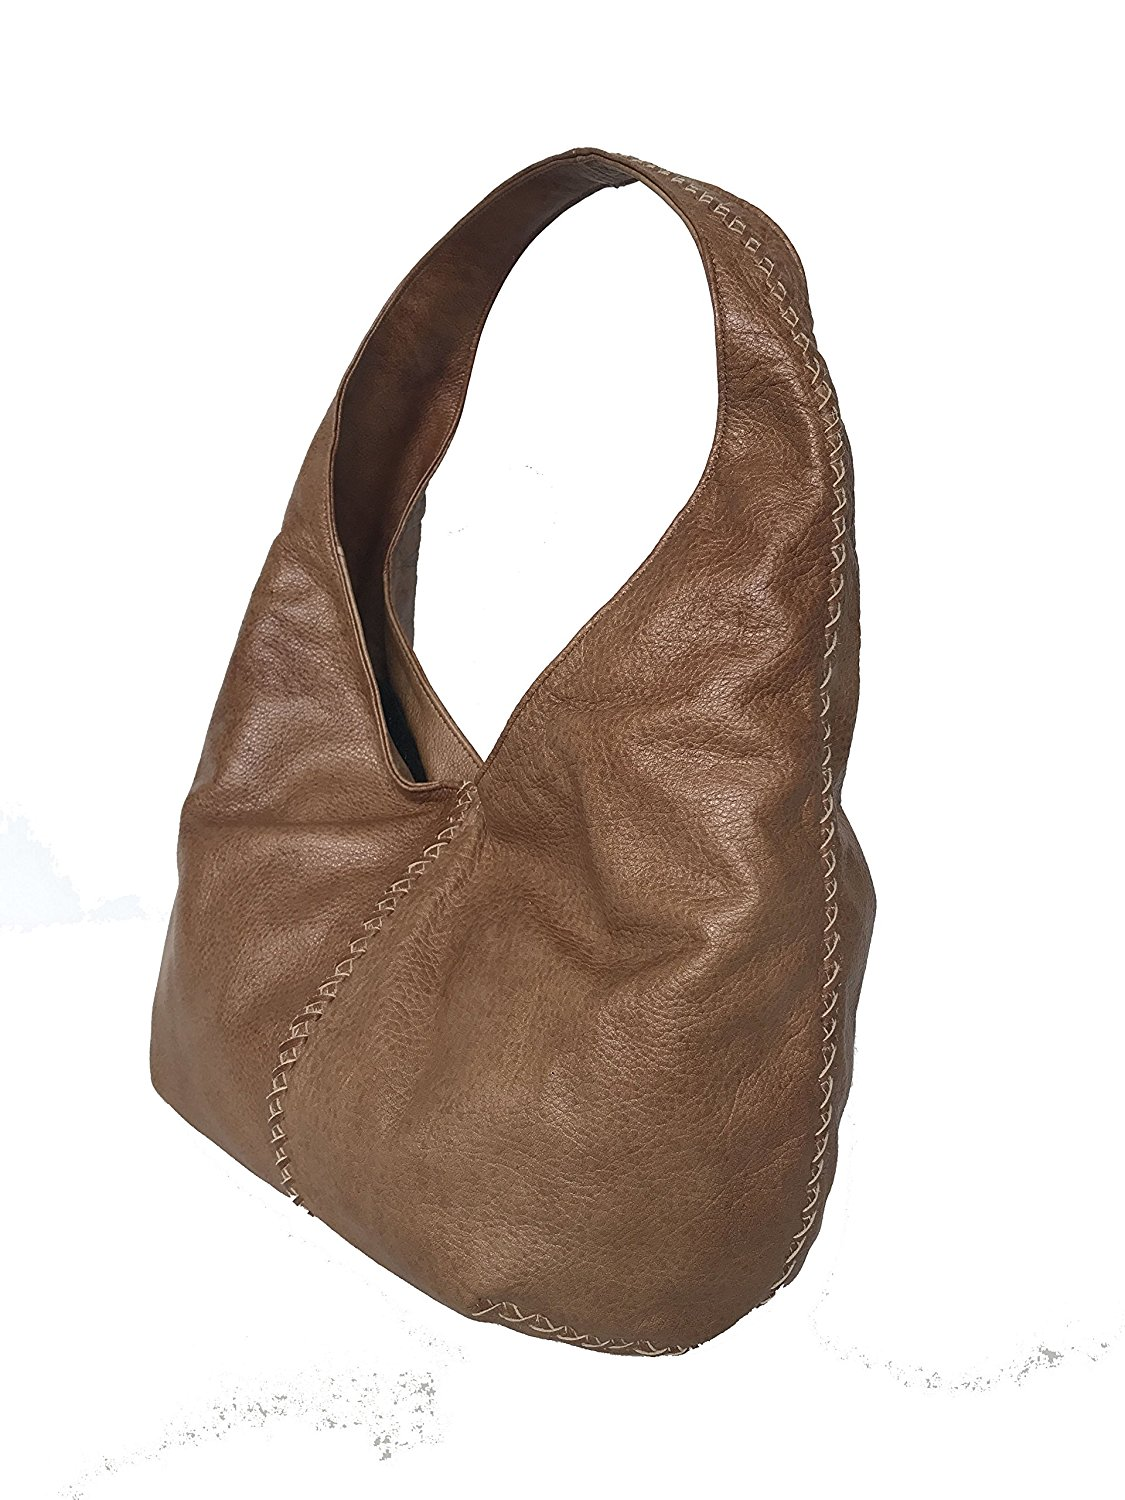 07c3cd82c0 Get Quotations · Fgalaze Brown Leather Hobo Bag